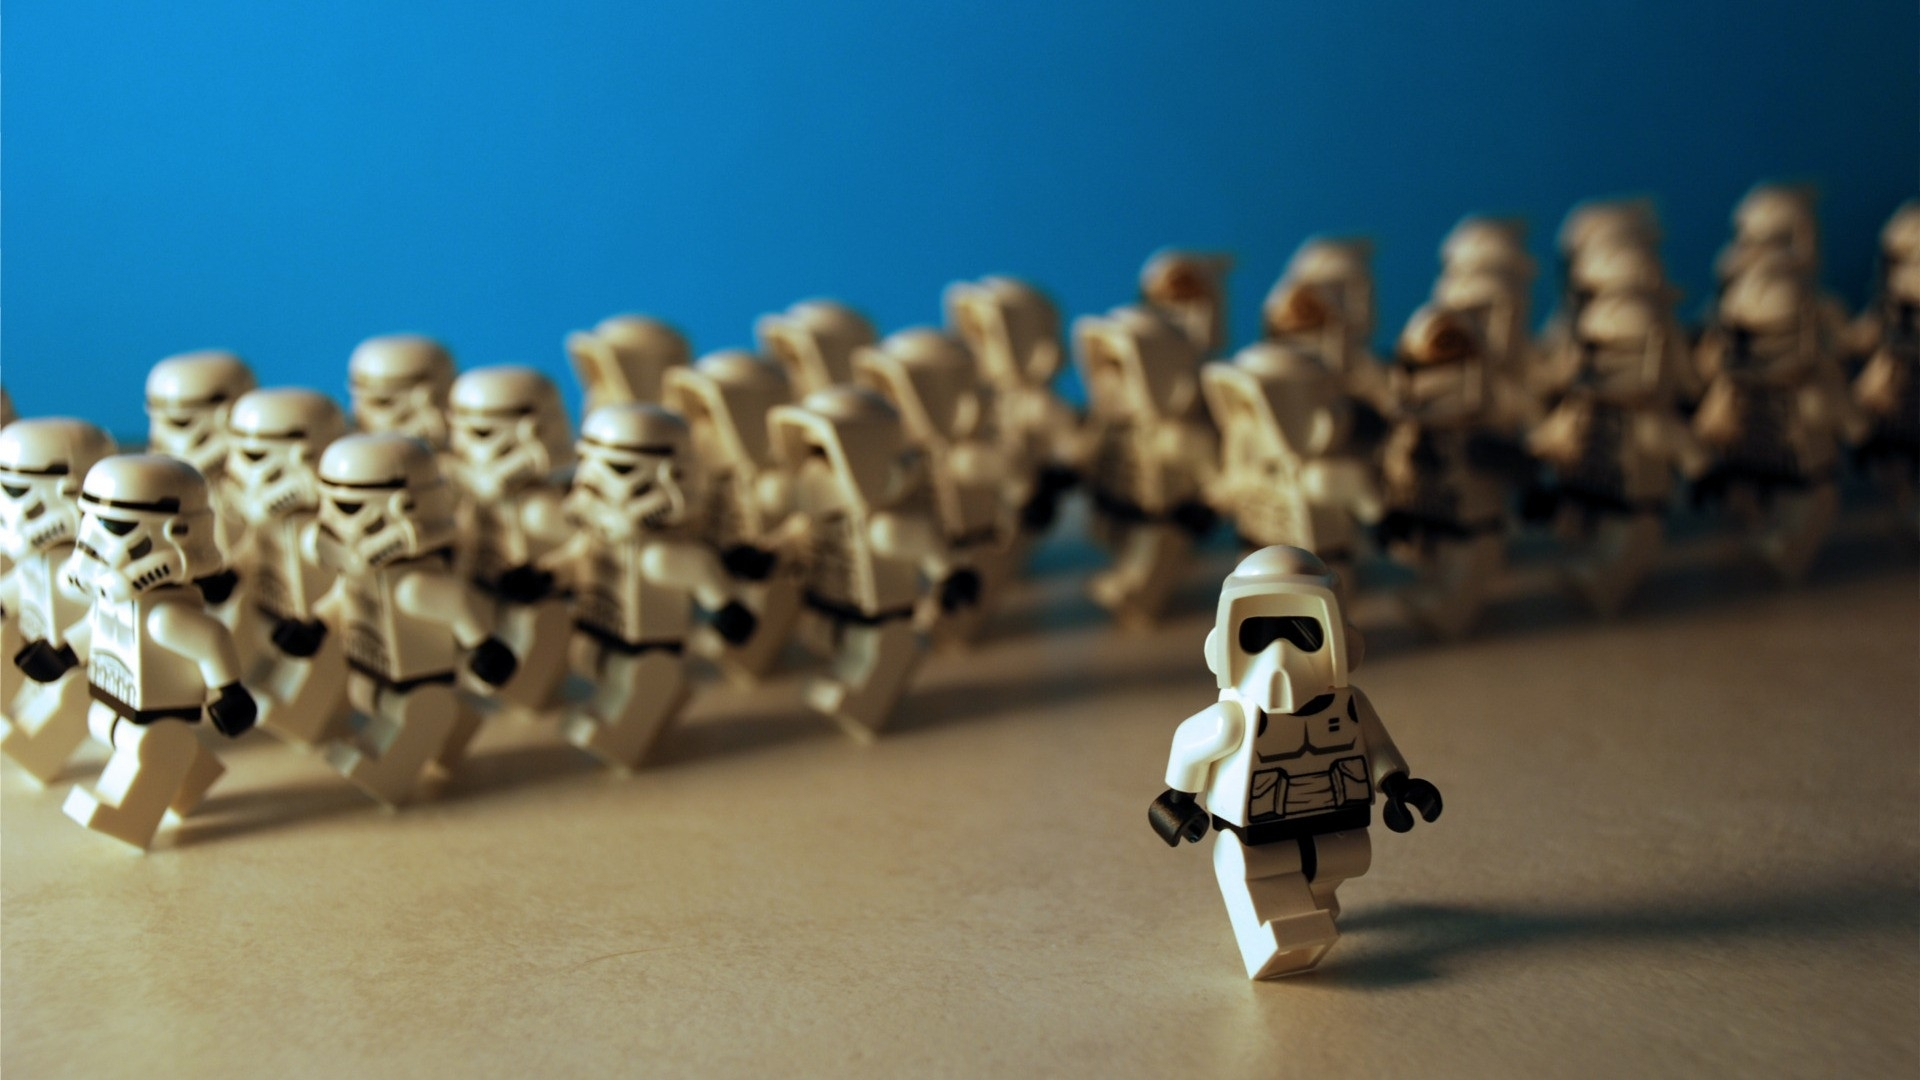 Wars Lego Stormtrooper   High Definition Wallpapers   HD wallpapers 1920x1080